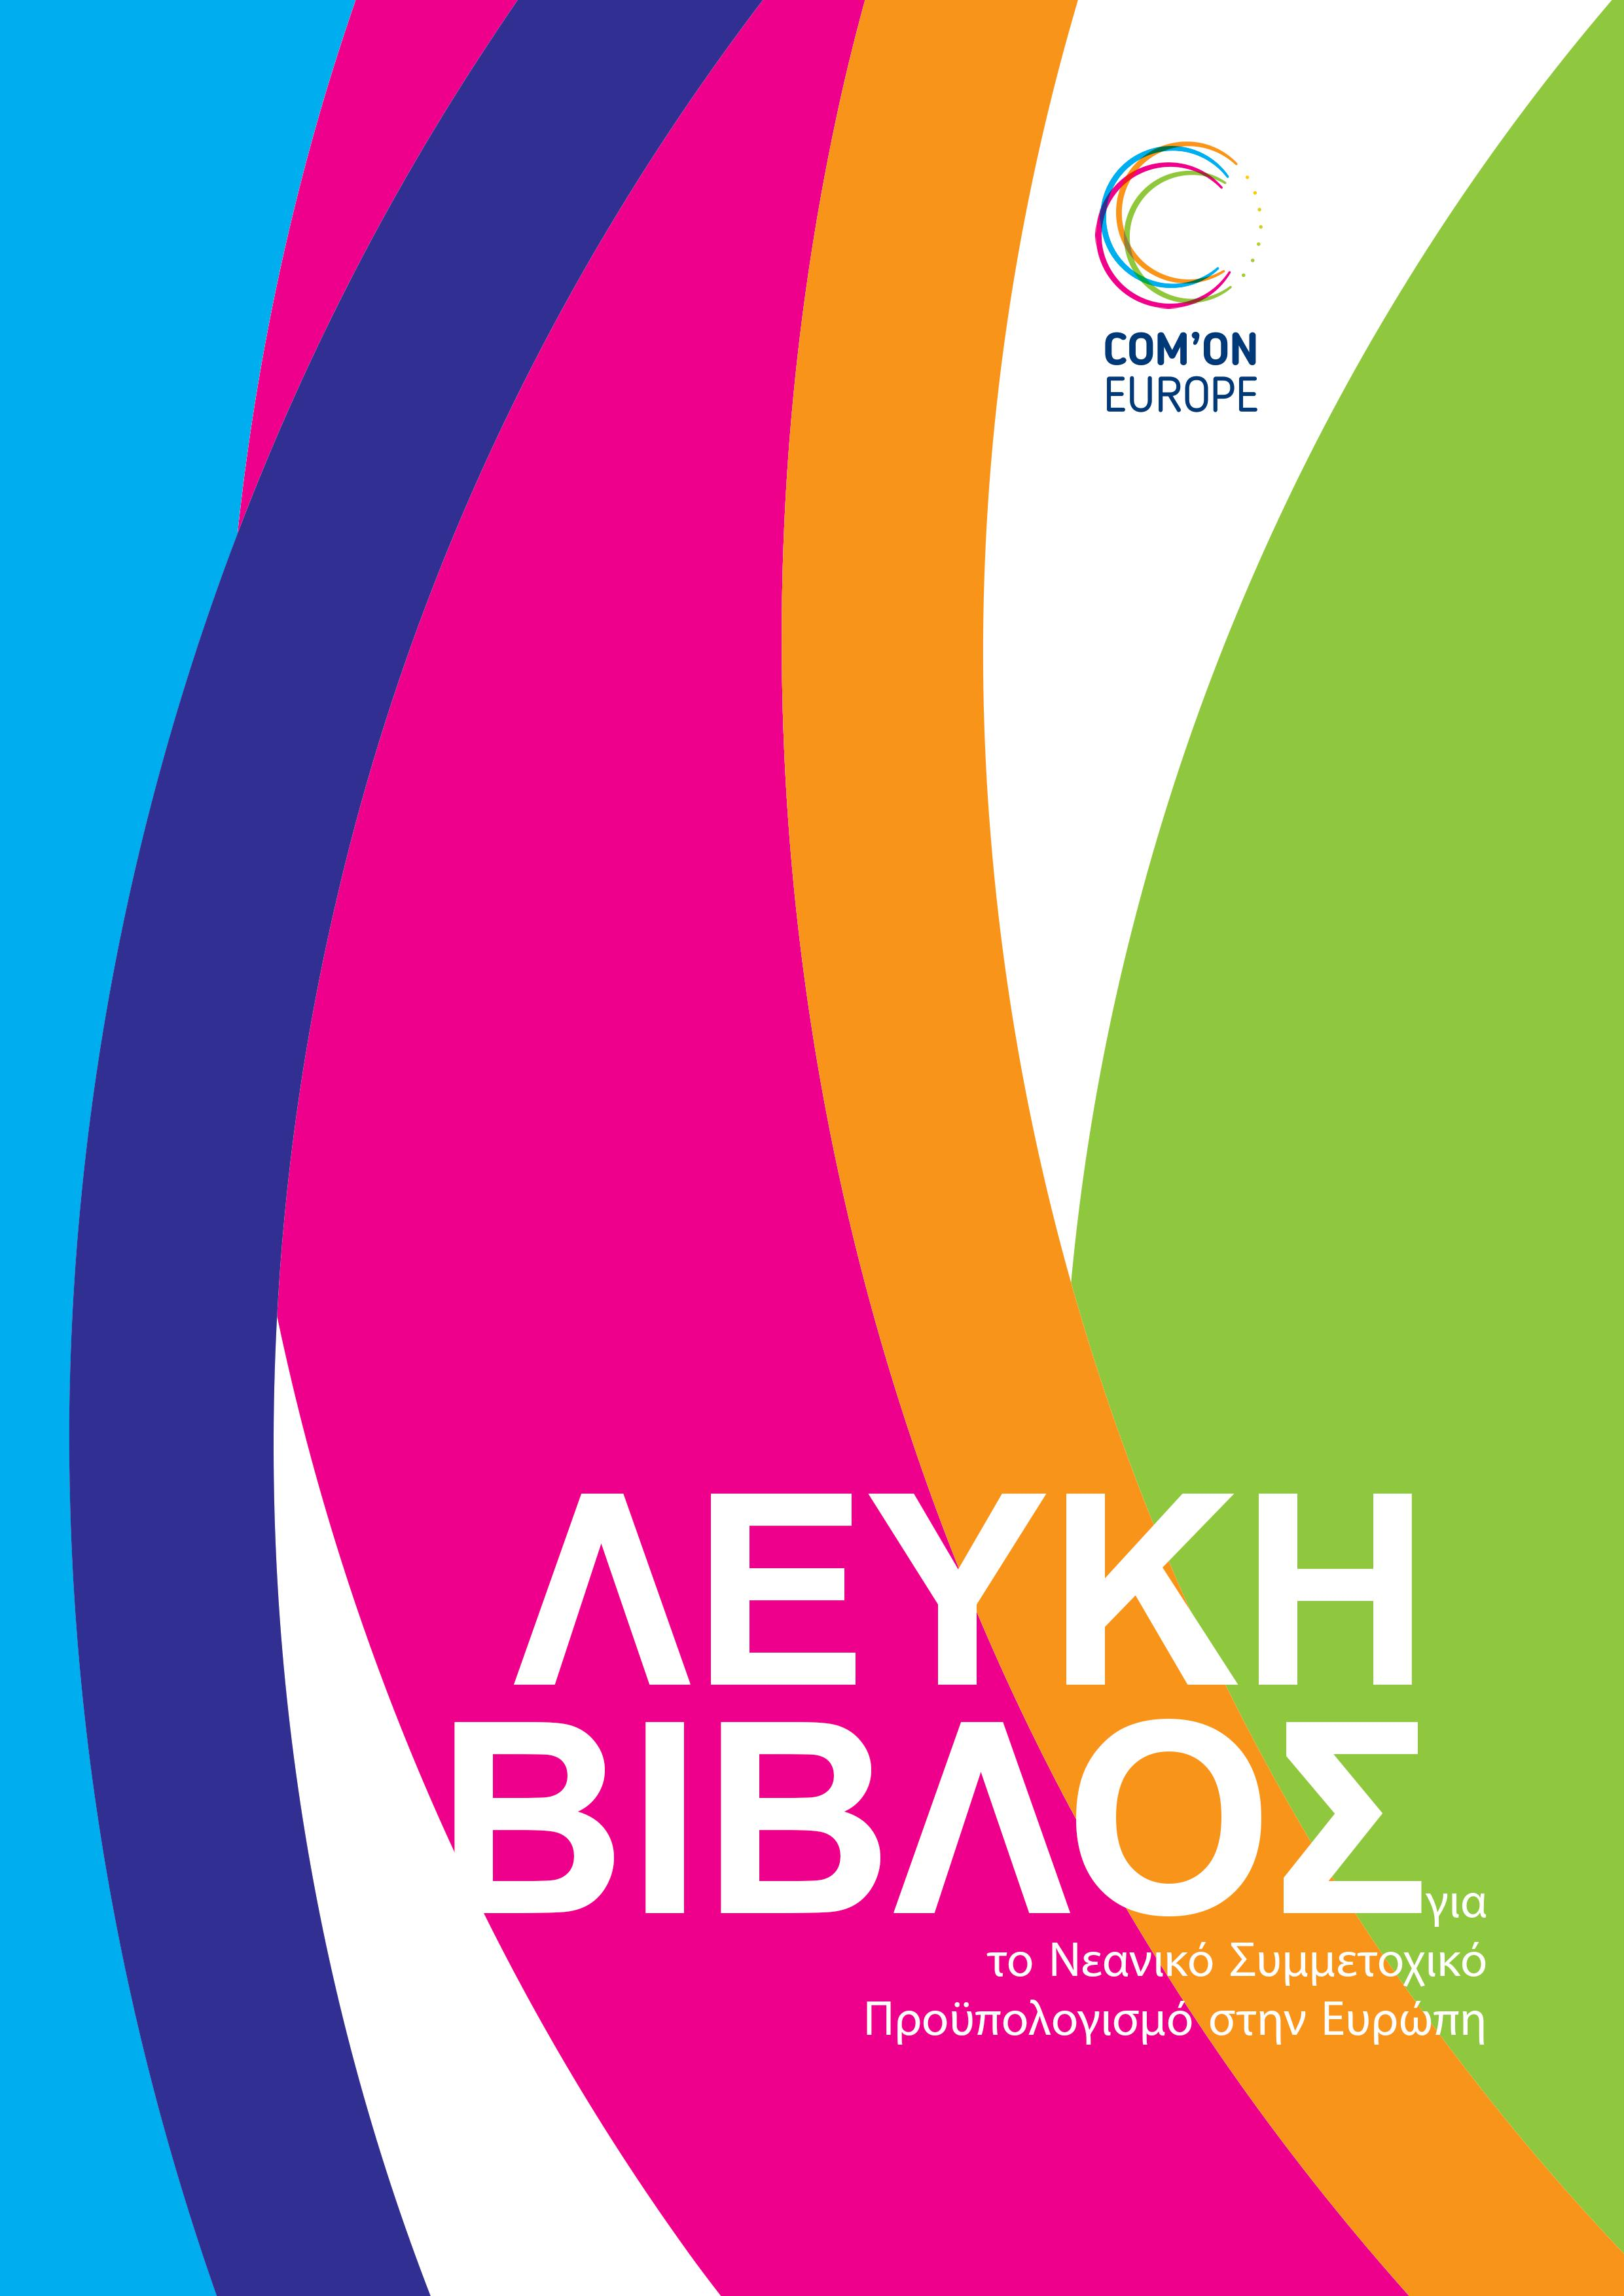 White Paper on Participatory Budgeting for Youth in Europe - Greek version